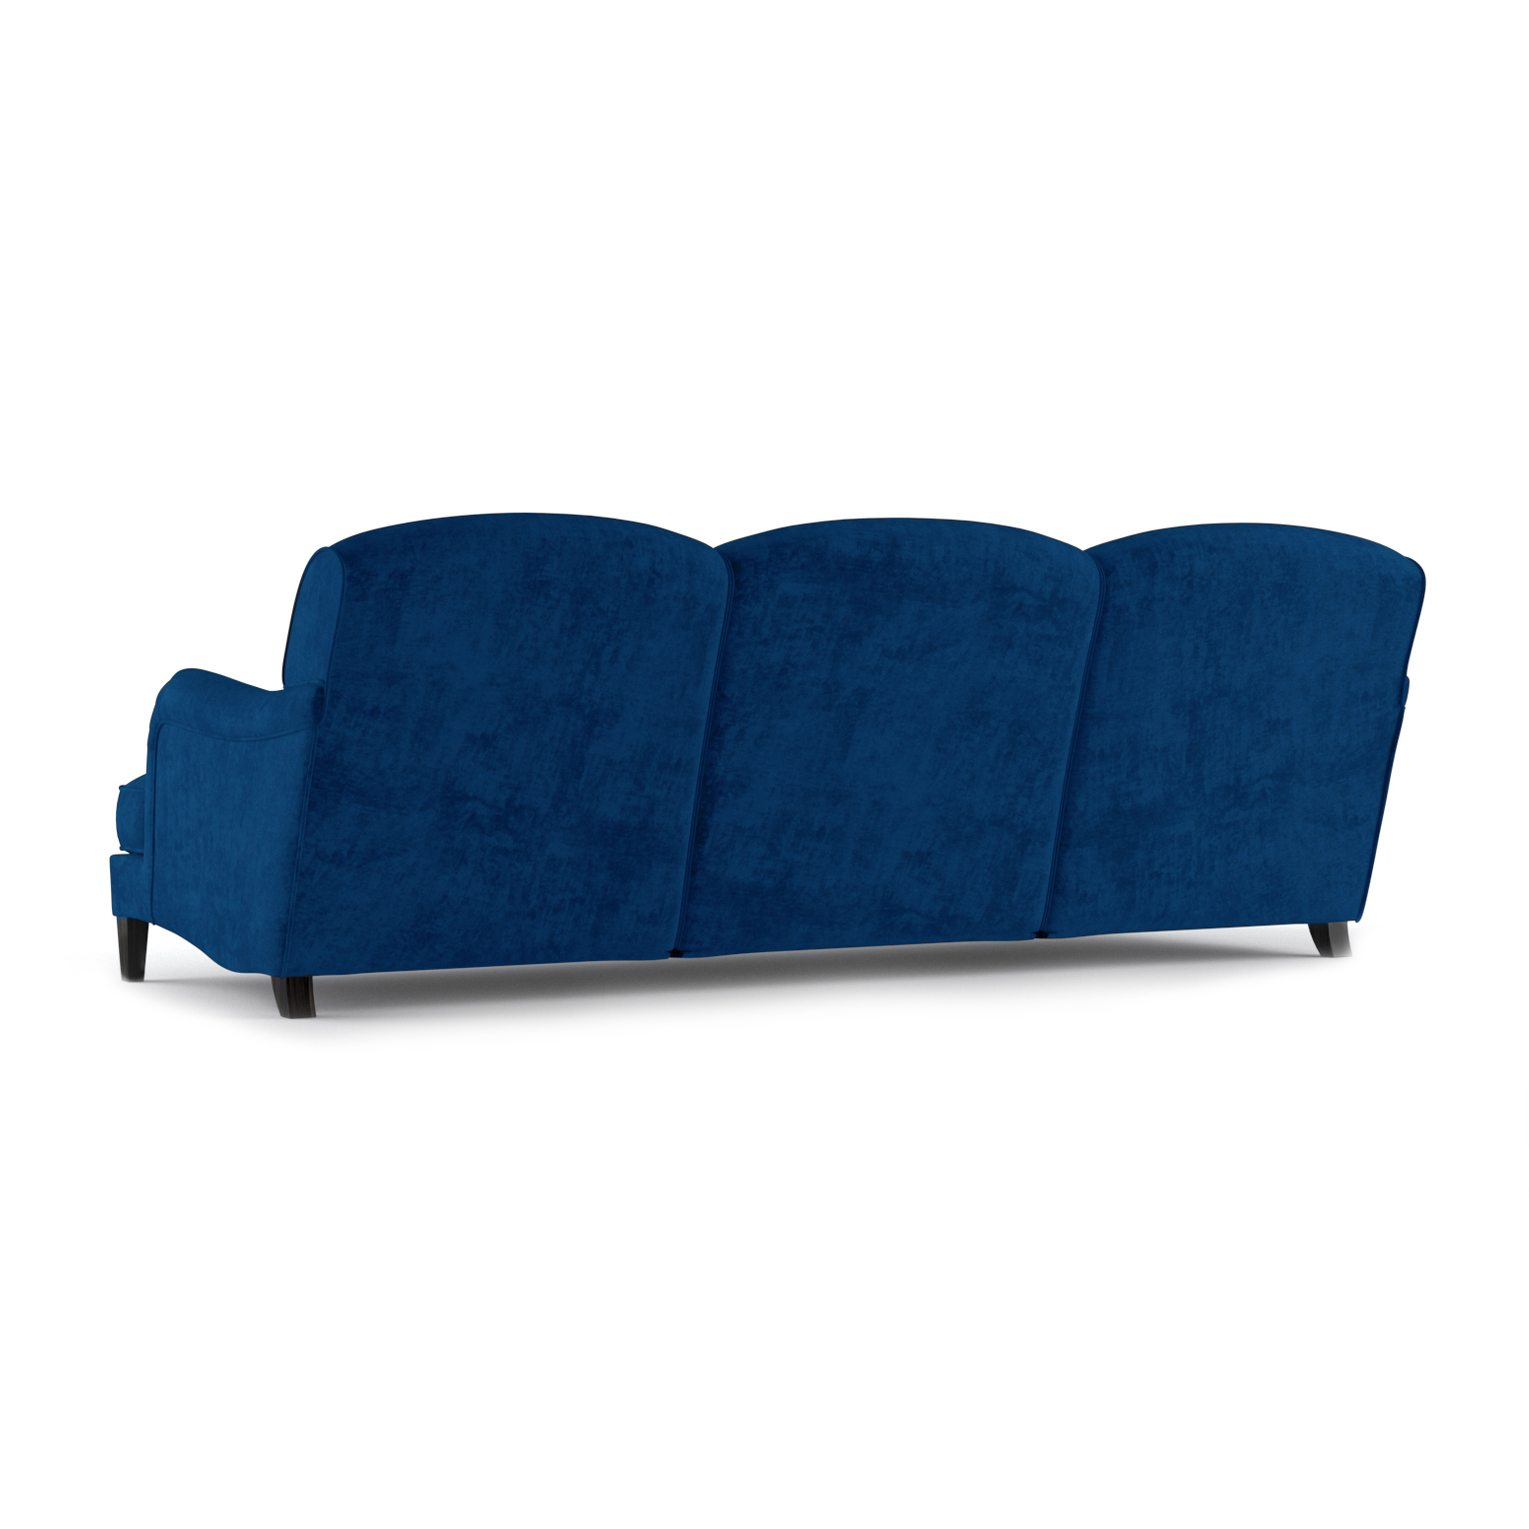 Windsor Three and a Half Seater Sofa by Bonham & Bonham Blue 06